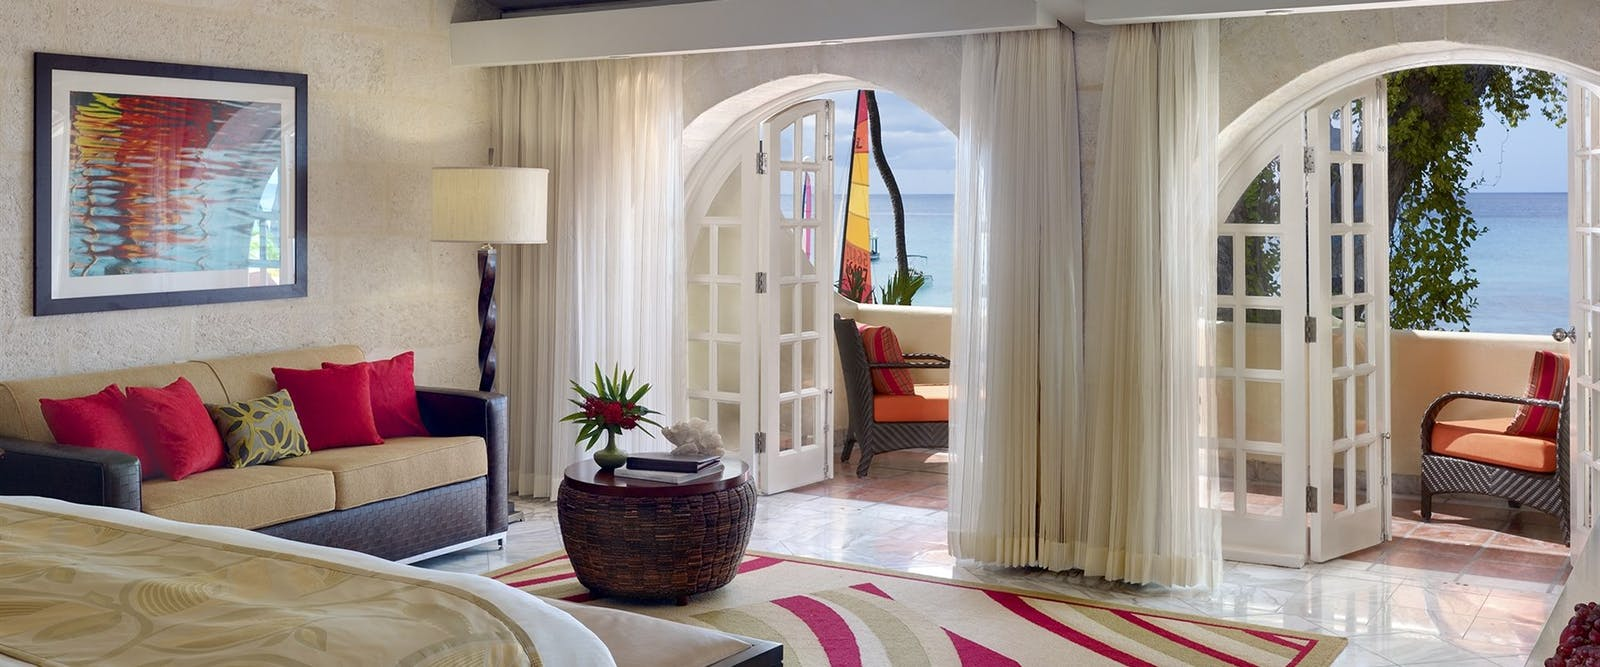 Ocean View Junior Suite at Tamarind by Elegant Hotels, Barbados